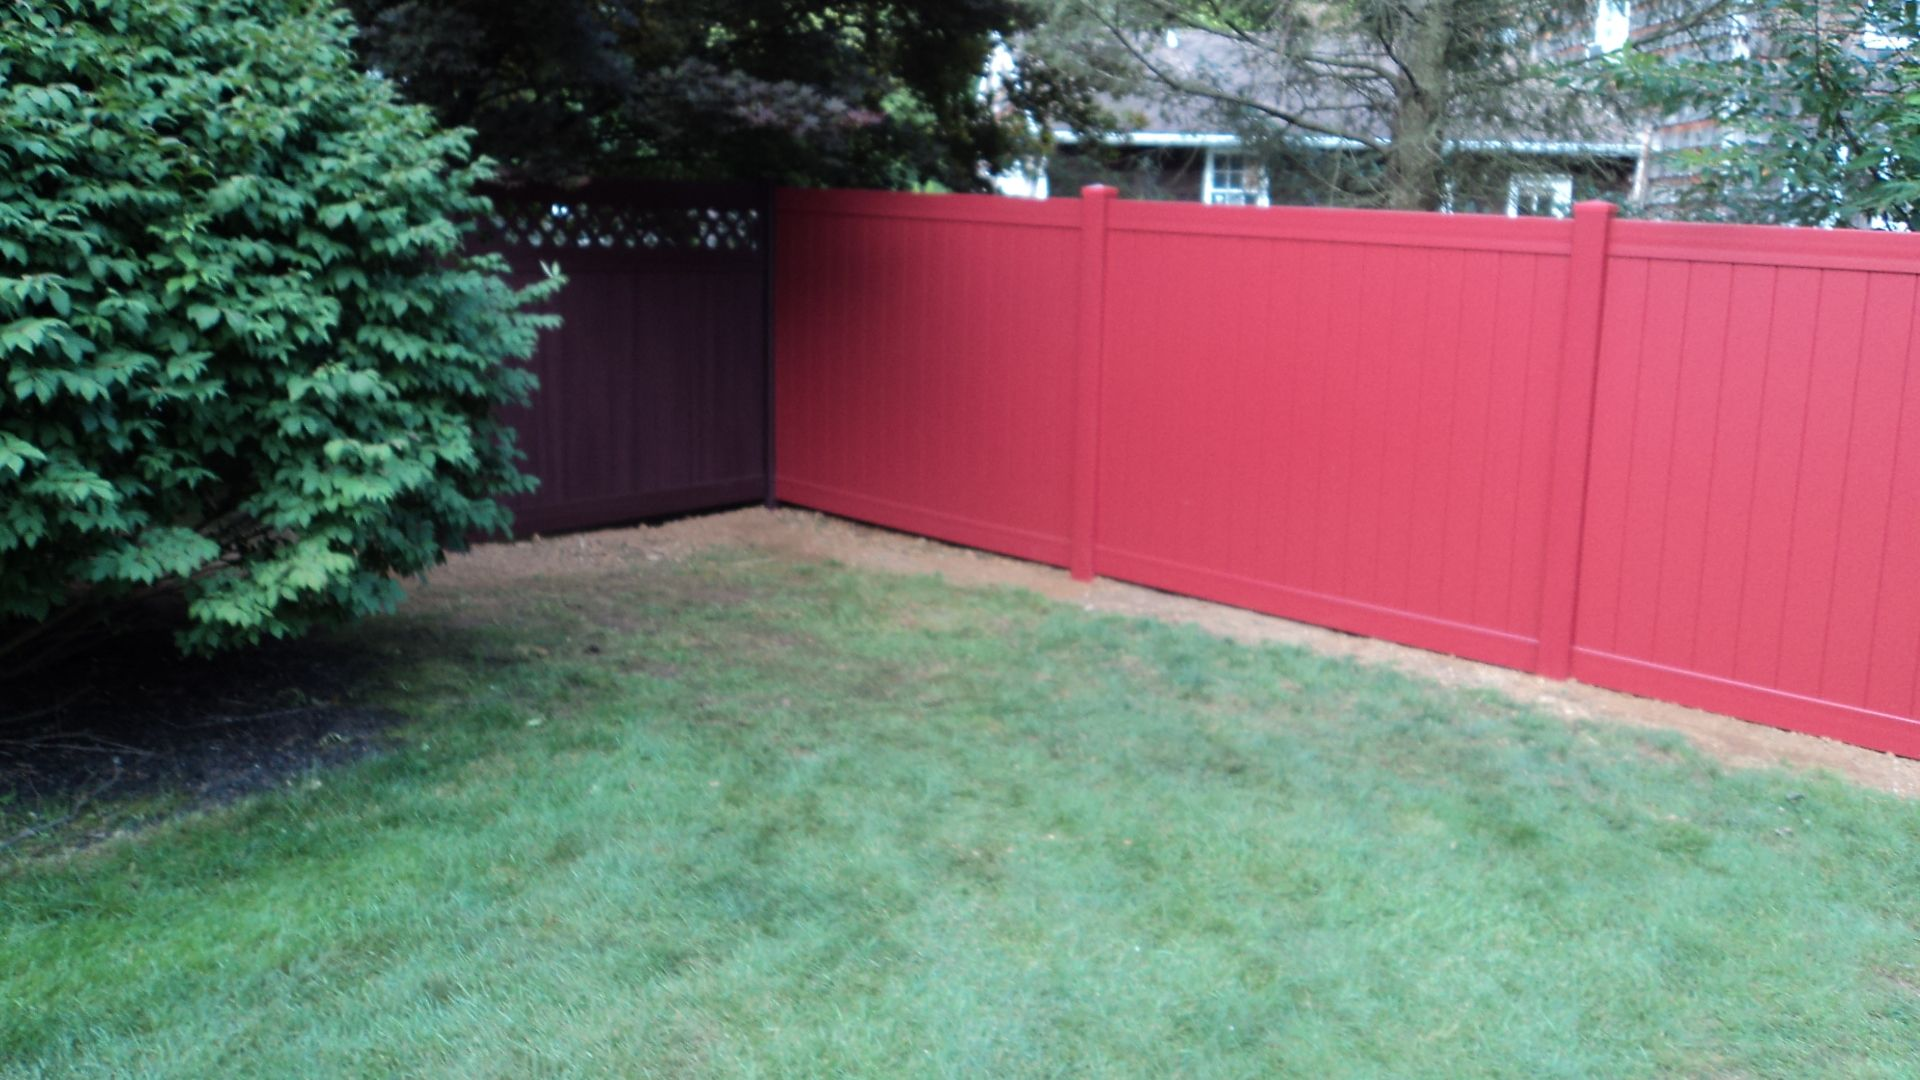 Featuring 8 colors designed to match most exterior landscape options...all low gloss matte finish